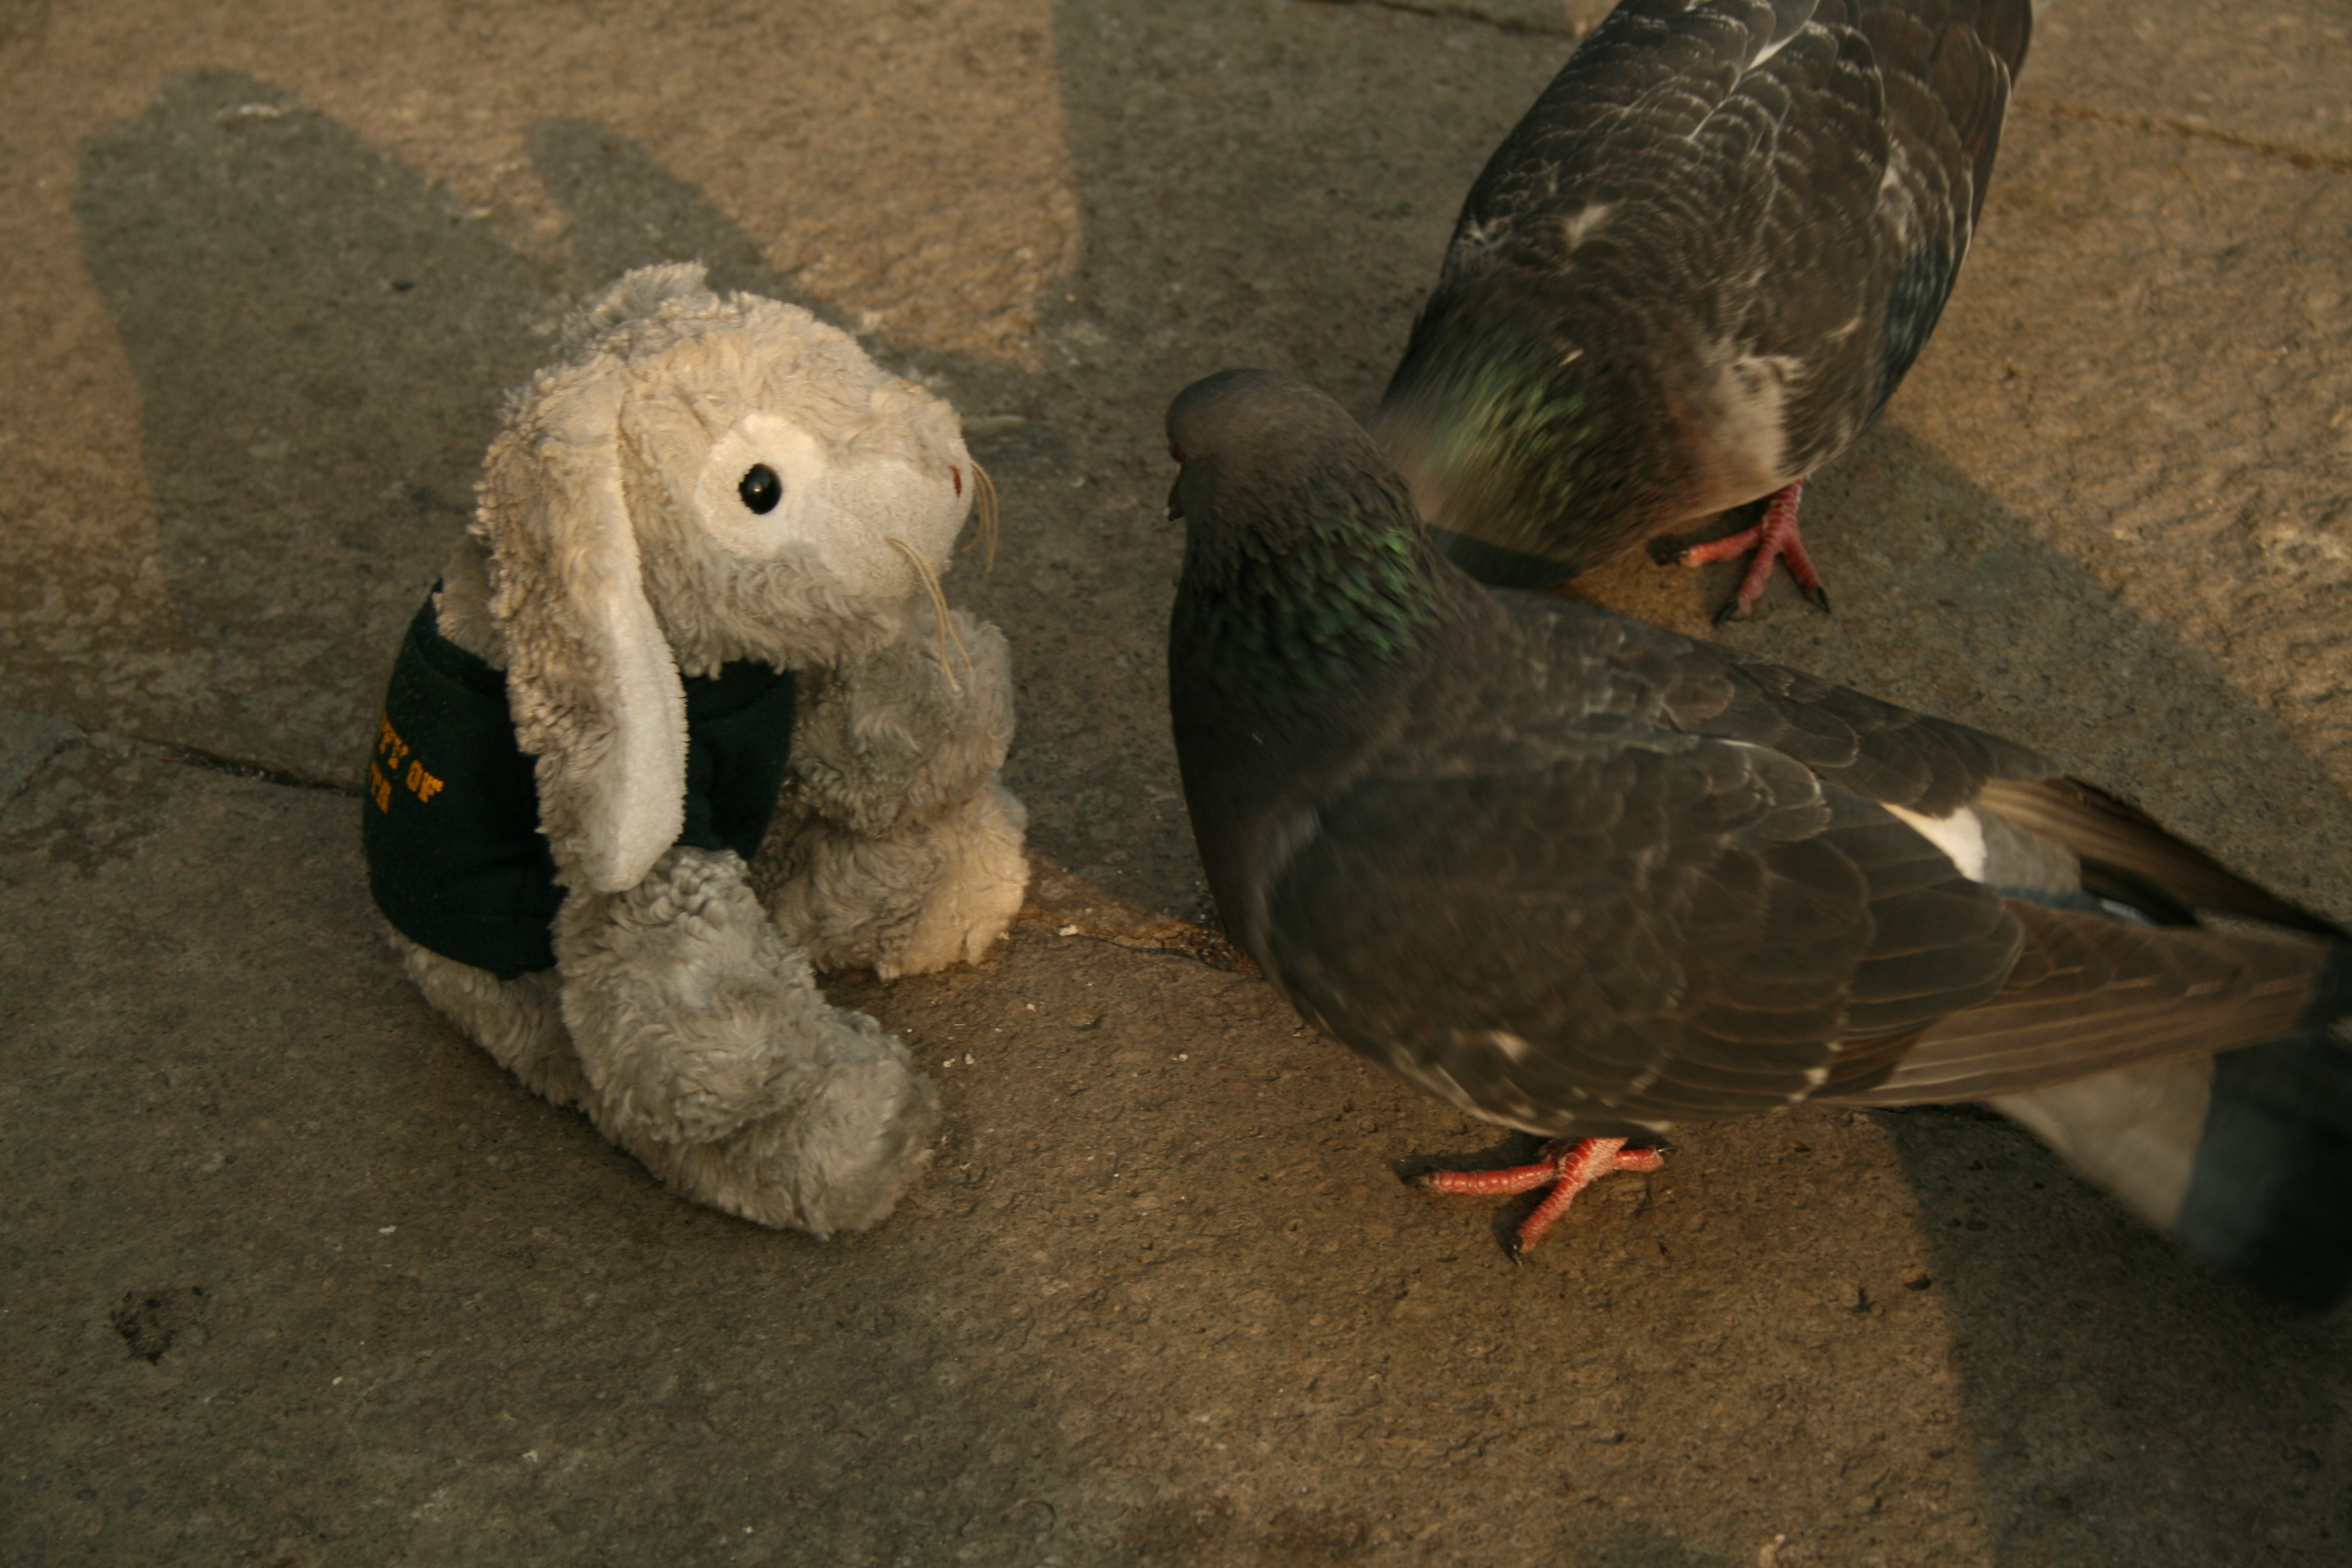 Snuggles talks to the pigeons in hope that they join our cause.